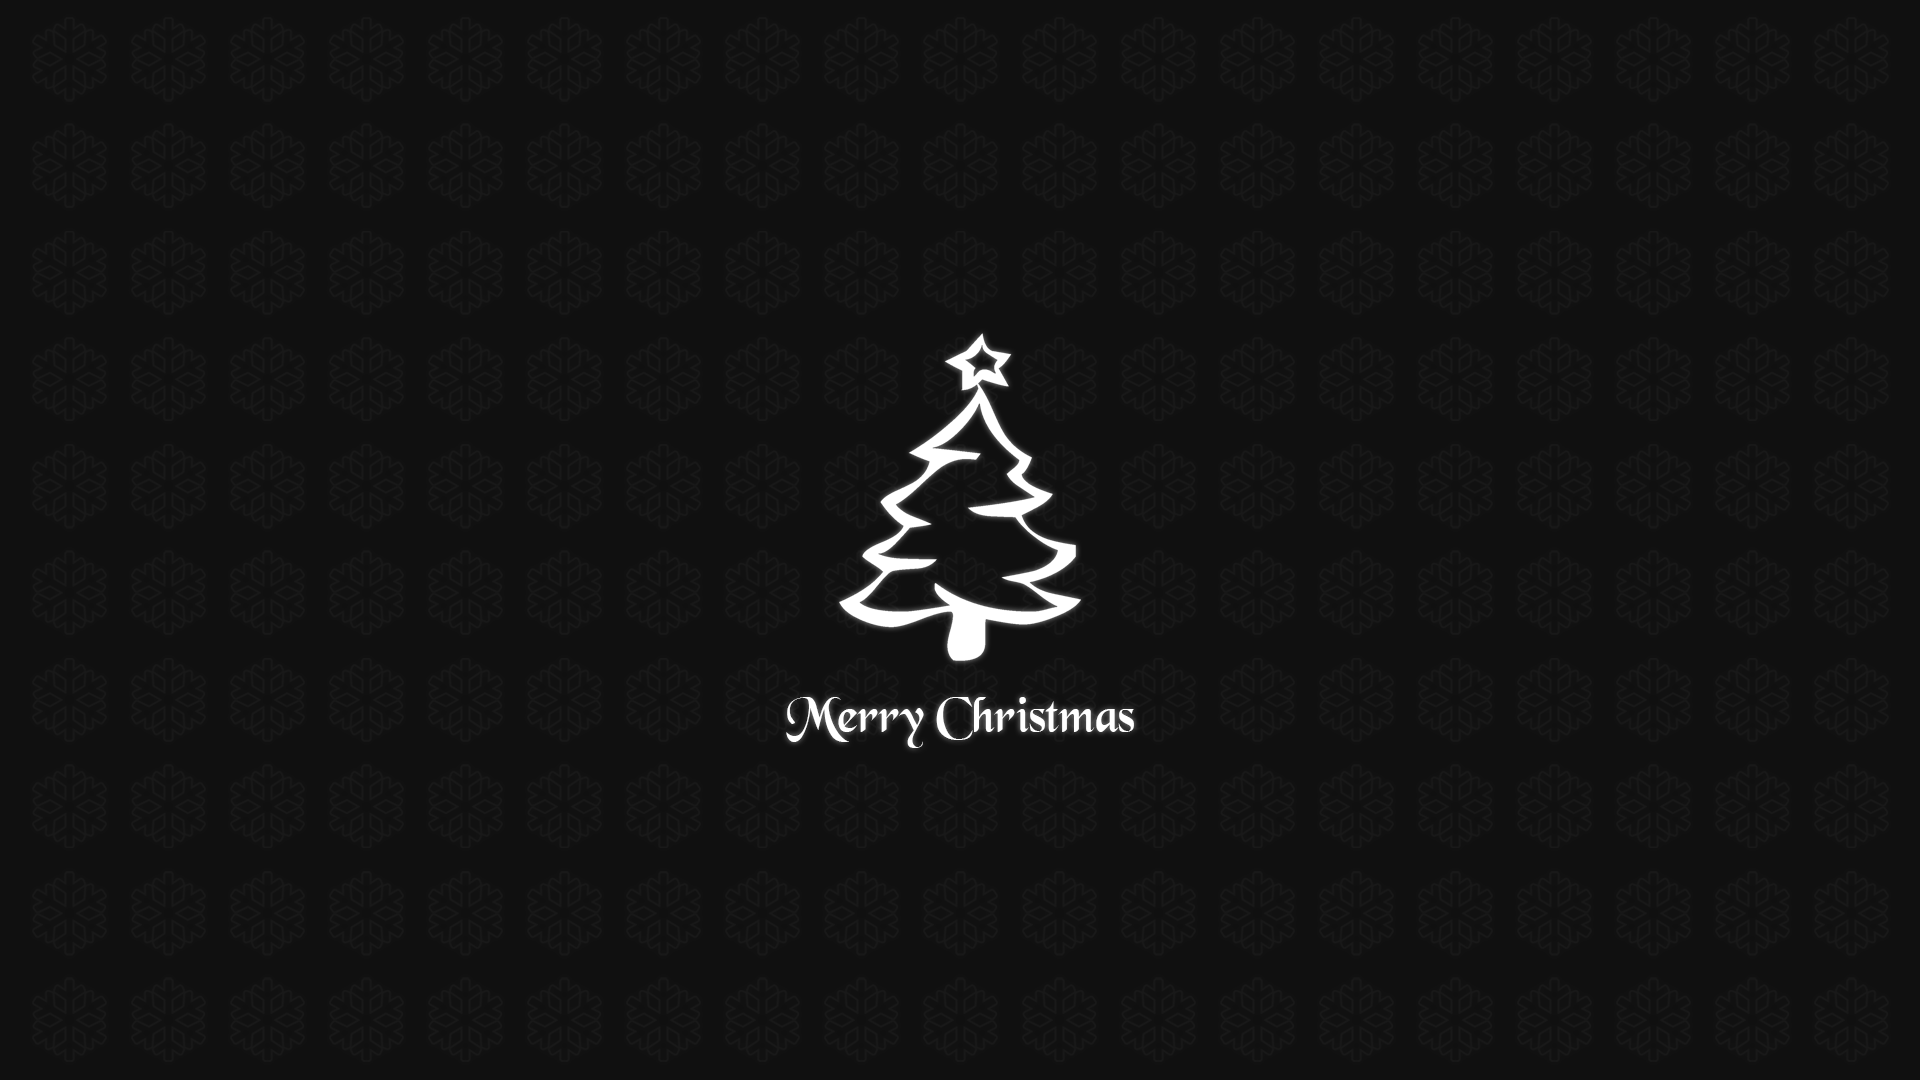 Simple Christmas Wallpaper 1920x1080 By SyntheticArts